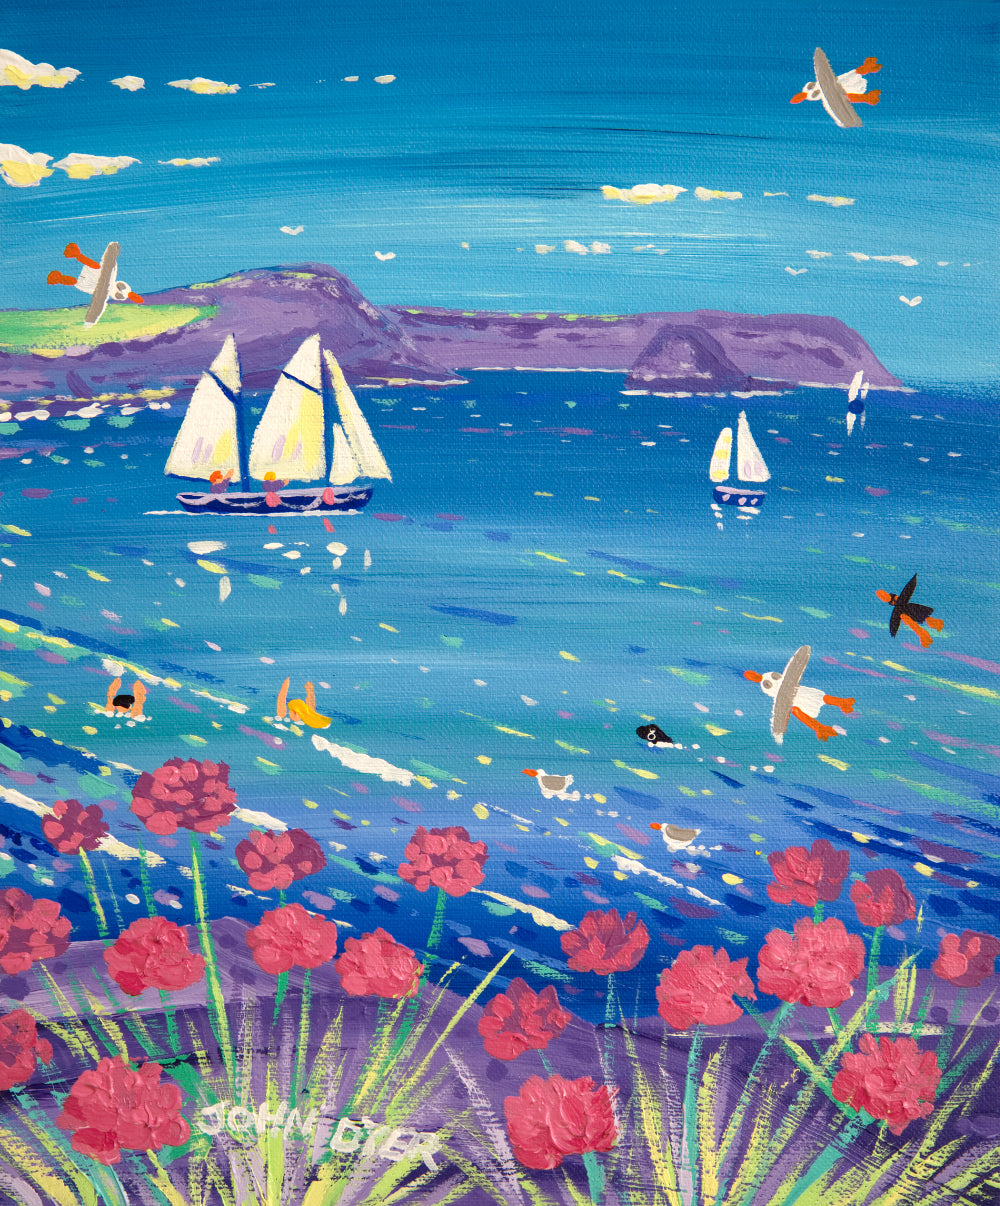 John Dyer Painting. Seapinks and Sailing Boats, Roseland